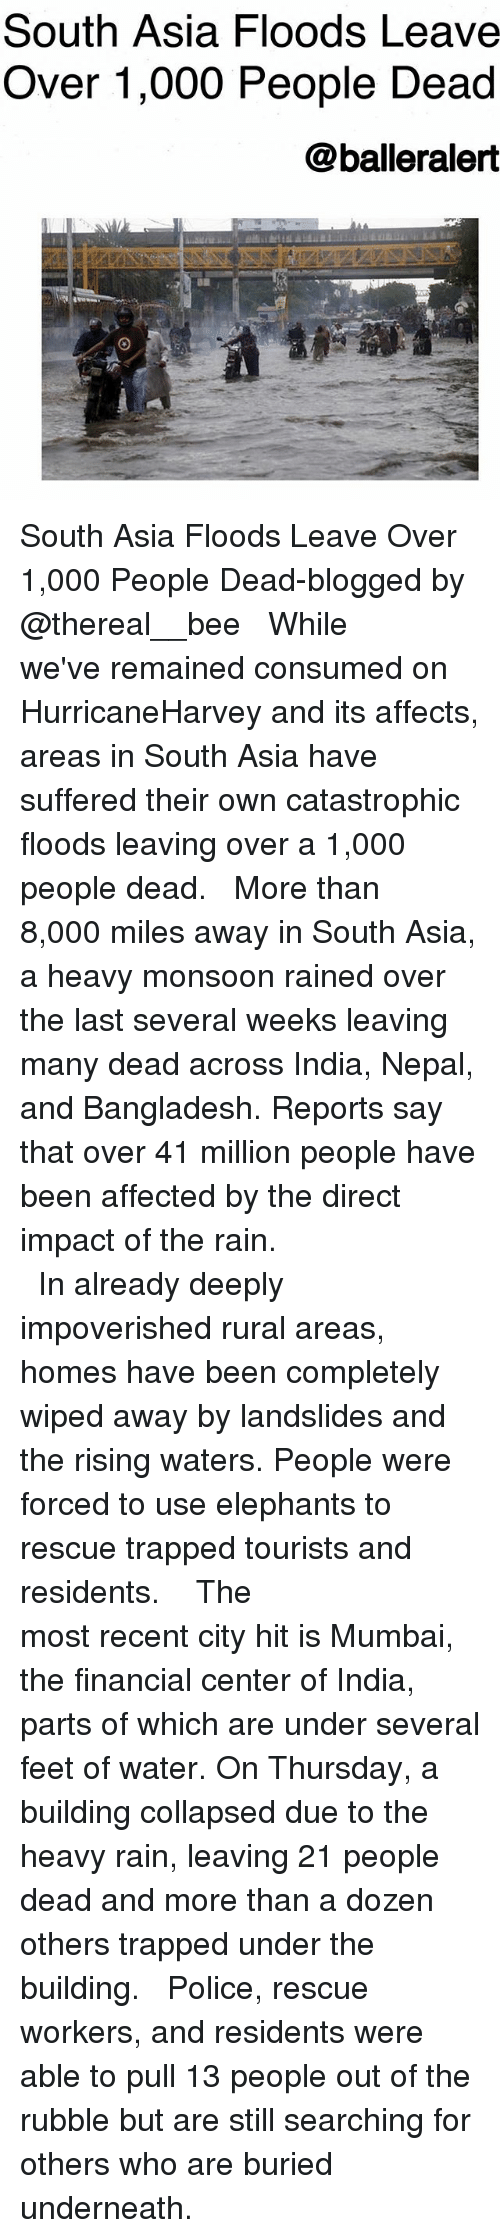 Memes, Police, and India: South Asia Floods Leave  Over 1,000 People Dead  @balleralert South Asia Floods Leave Over 1,000 People Dead-blogged by @thereal__bee ⠀⠀⠀⠀⠀⠀⠀⠀⠀ ⠀⠀ While we've remained consumed on HurricaneHarvey and its affects, areas in South Asia have suffered their own catastrophic floods leaving over a 1,000 people dead. ⠀⠀⠀⠀⠀⠀⠀⠀⠀ ⠀⠀ More than 8,000 miles away in South Asia, a heavy monsoon rained over the last several weeks leaving many dead across India, Nepal, and Bangladesh. Reports say that over 41 million people have been affected by the direct impact of the rain. ⠀⠀⠀⠀⠀⠀⠀⠀⠀ ⠀⠀⠀⠀⠀⠀⠀ ⠀⠀⠀⠀⠀⠀⠀ ⠀⠀⠀⠀⠀⠀⠀ In already deeply impoverished rural areas, homes have been completely wiped away by landslides and the rising waters. People were forced to use elephants to rescue trapped tourists and residents. ⠀⠀⠀⠀⠀⠀⠀⠀⠀ ⠀⠀⠀⠀⠀⠀⠀ ⠀⠀⠀⠀⠀⠀⠀ The most recent city hit is Mumbai, the financial center of India, parts of which are under several feet of water. On Thursday, a building collapsed due to the heavy rain, leaving 21 people dead and more than a dozen others trapped under the building. ⠀⠀⠀⠀⠀⠀⠀⠀⠀ ⠀⠀ Police, rescue workers, and residents were able to pull 13 people out of the rubble but are still searching for others who are buried underneath.